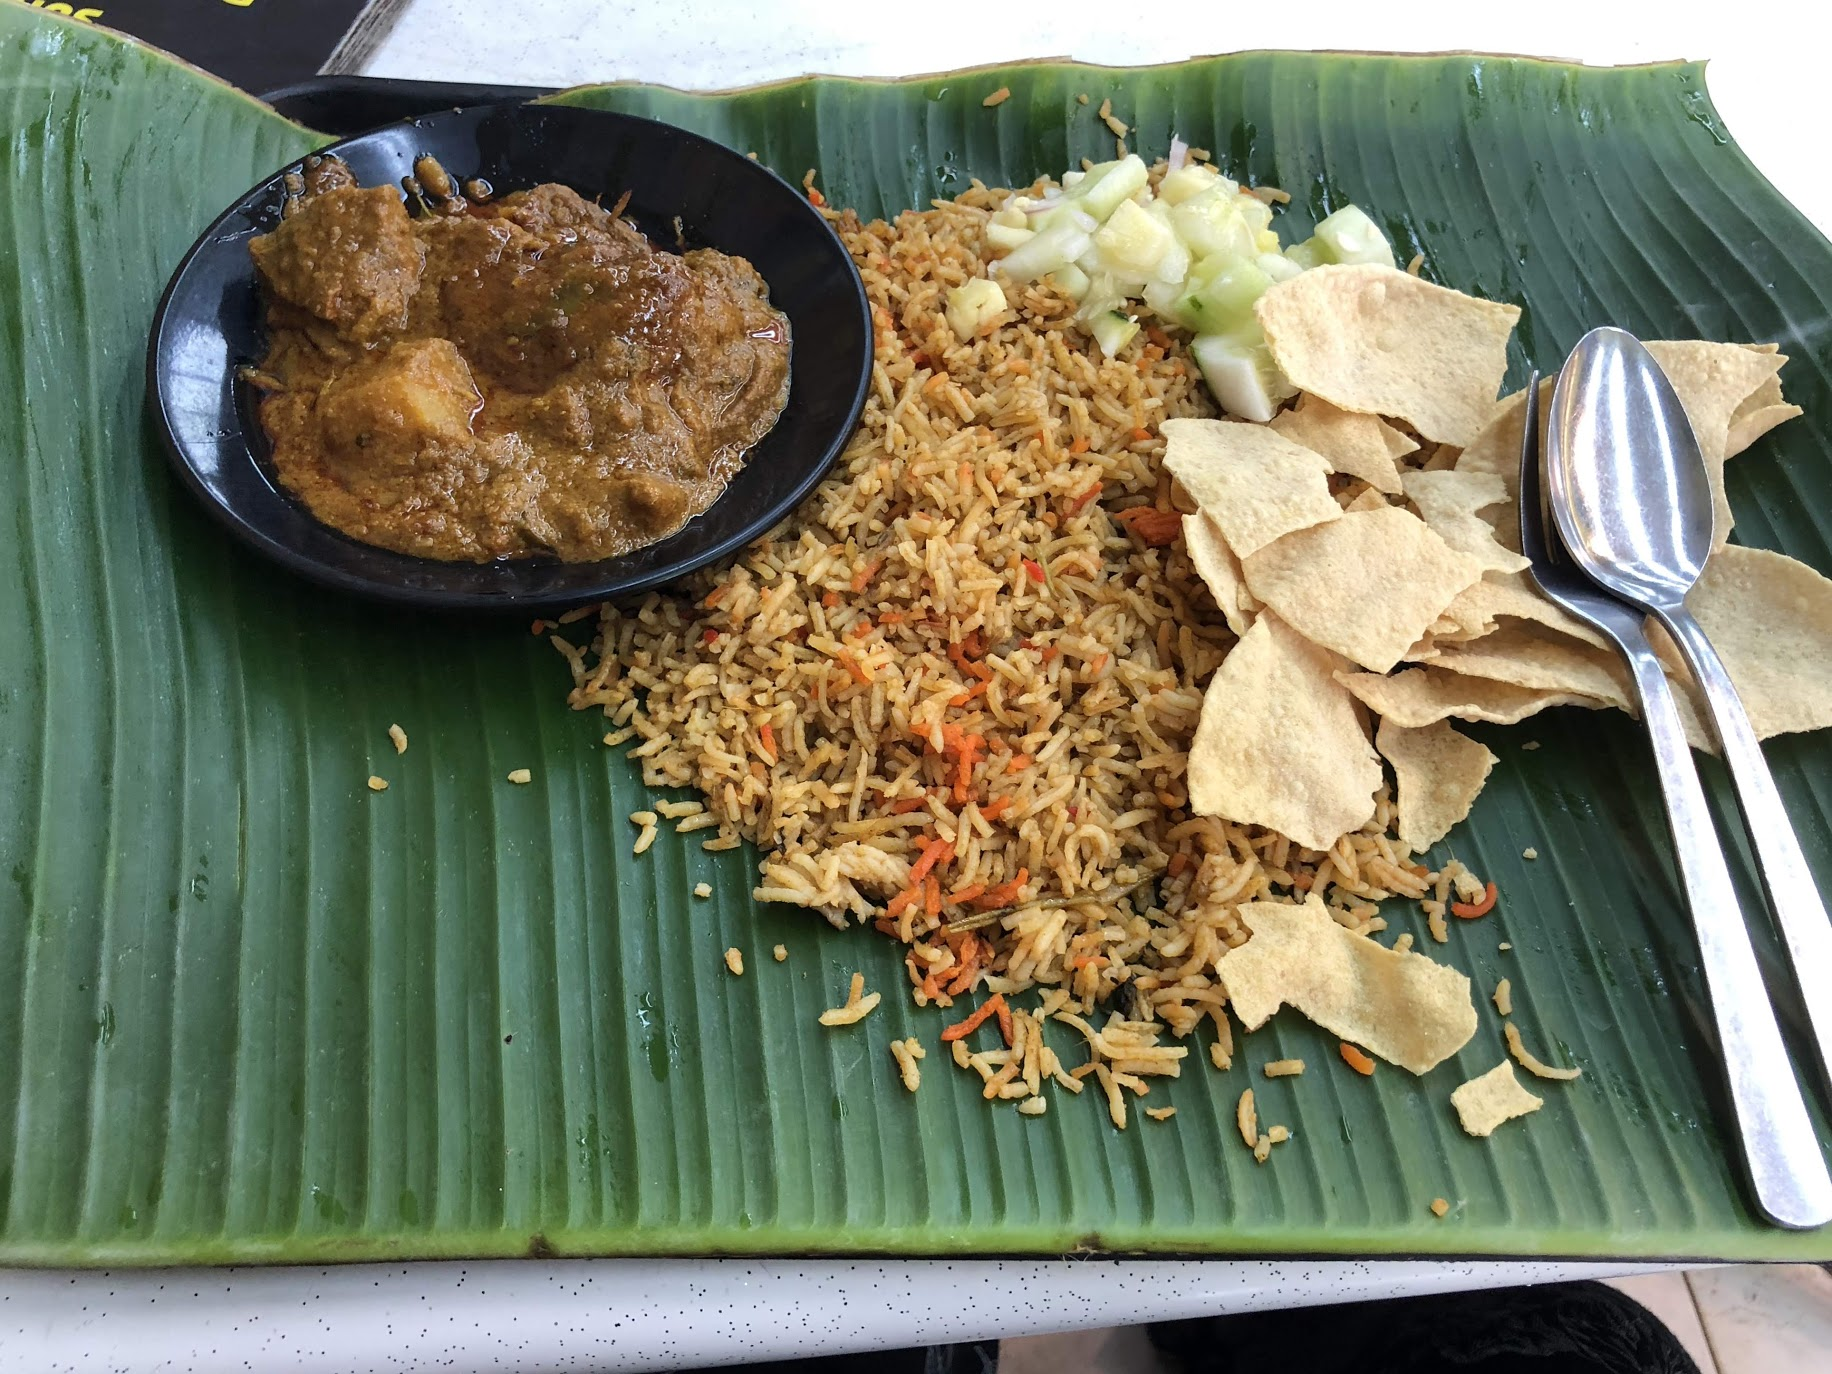 There were a lot of Indian restaurants near where I stayed and I enjoyed this spicy lamb dish with rice and rice crackers.